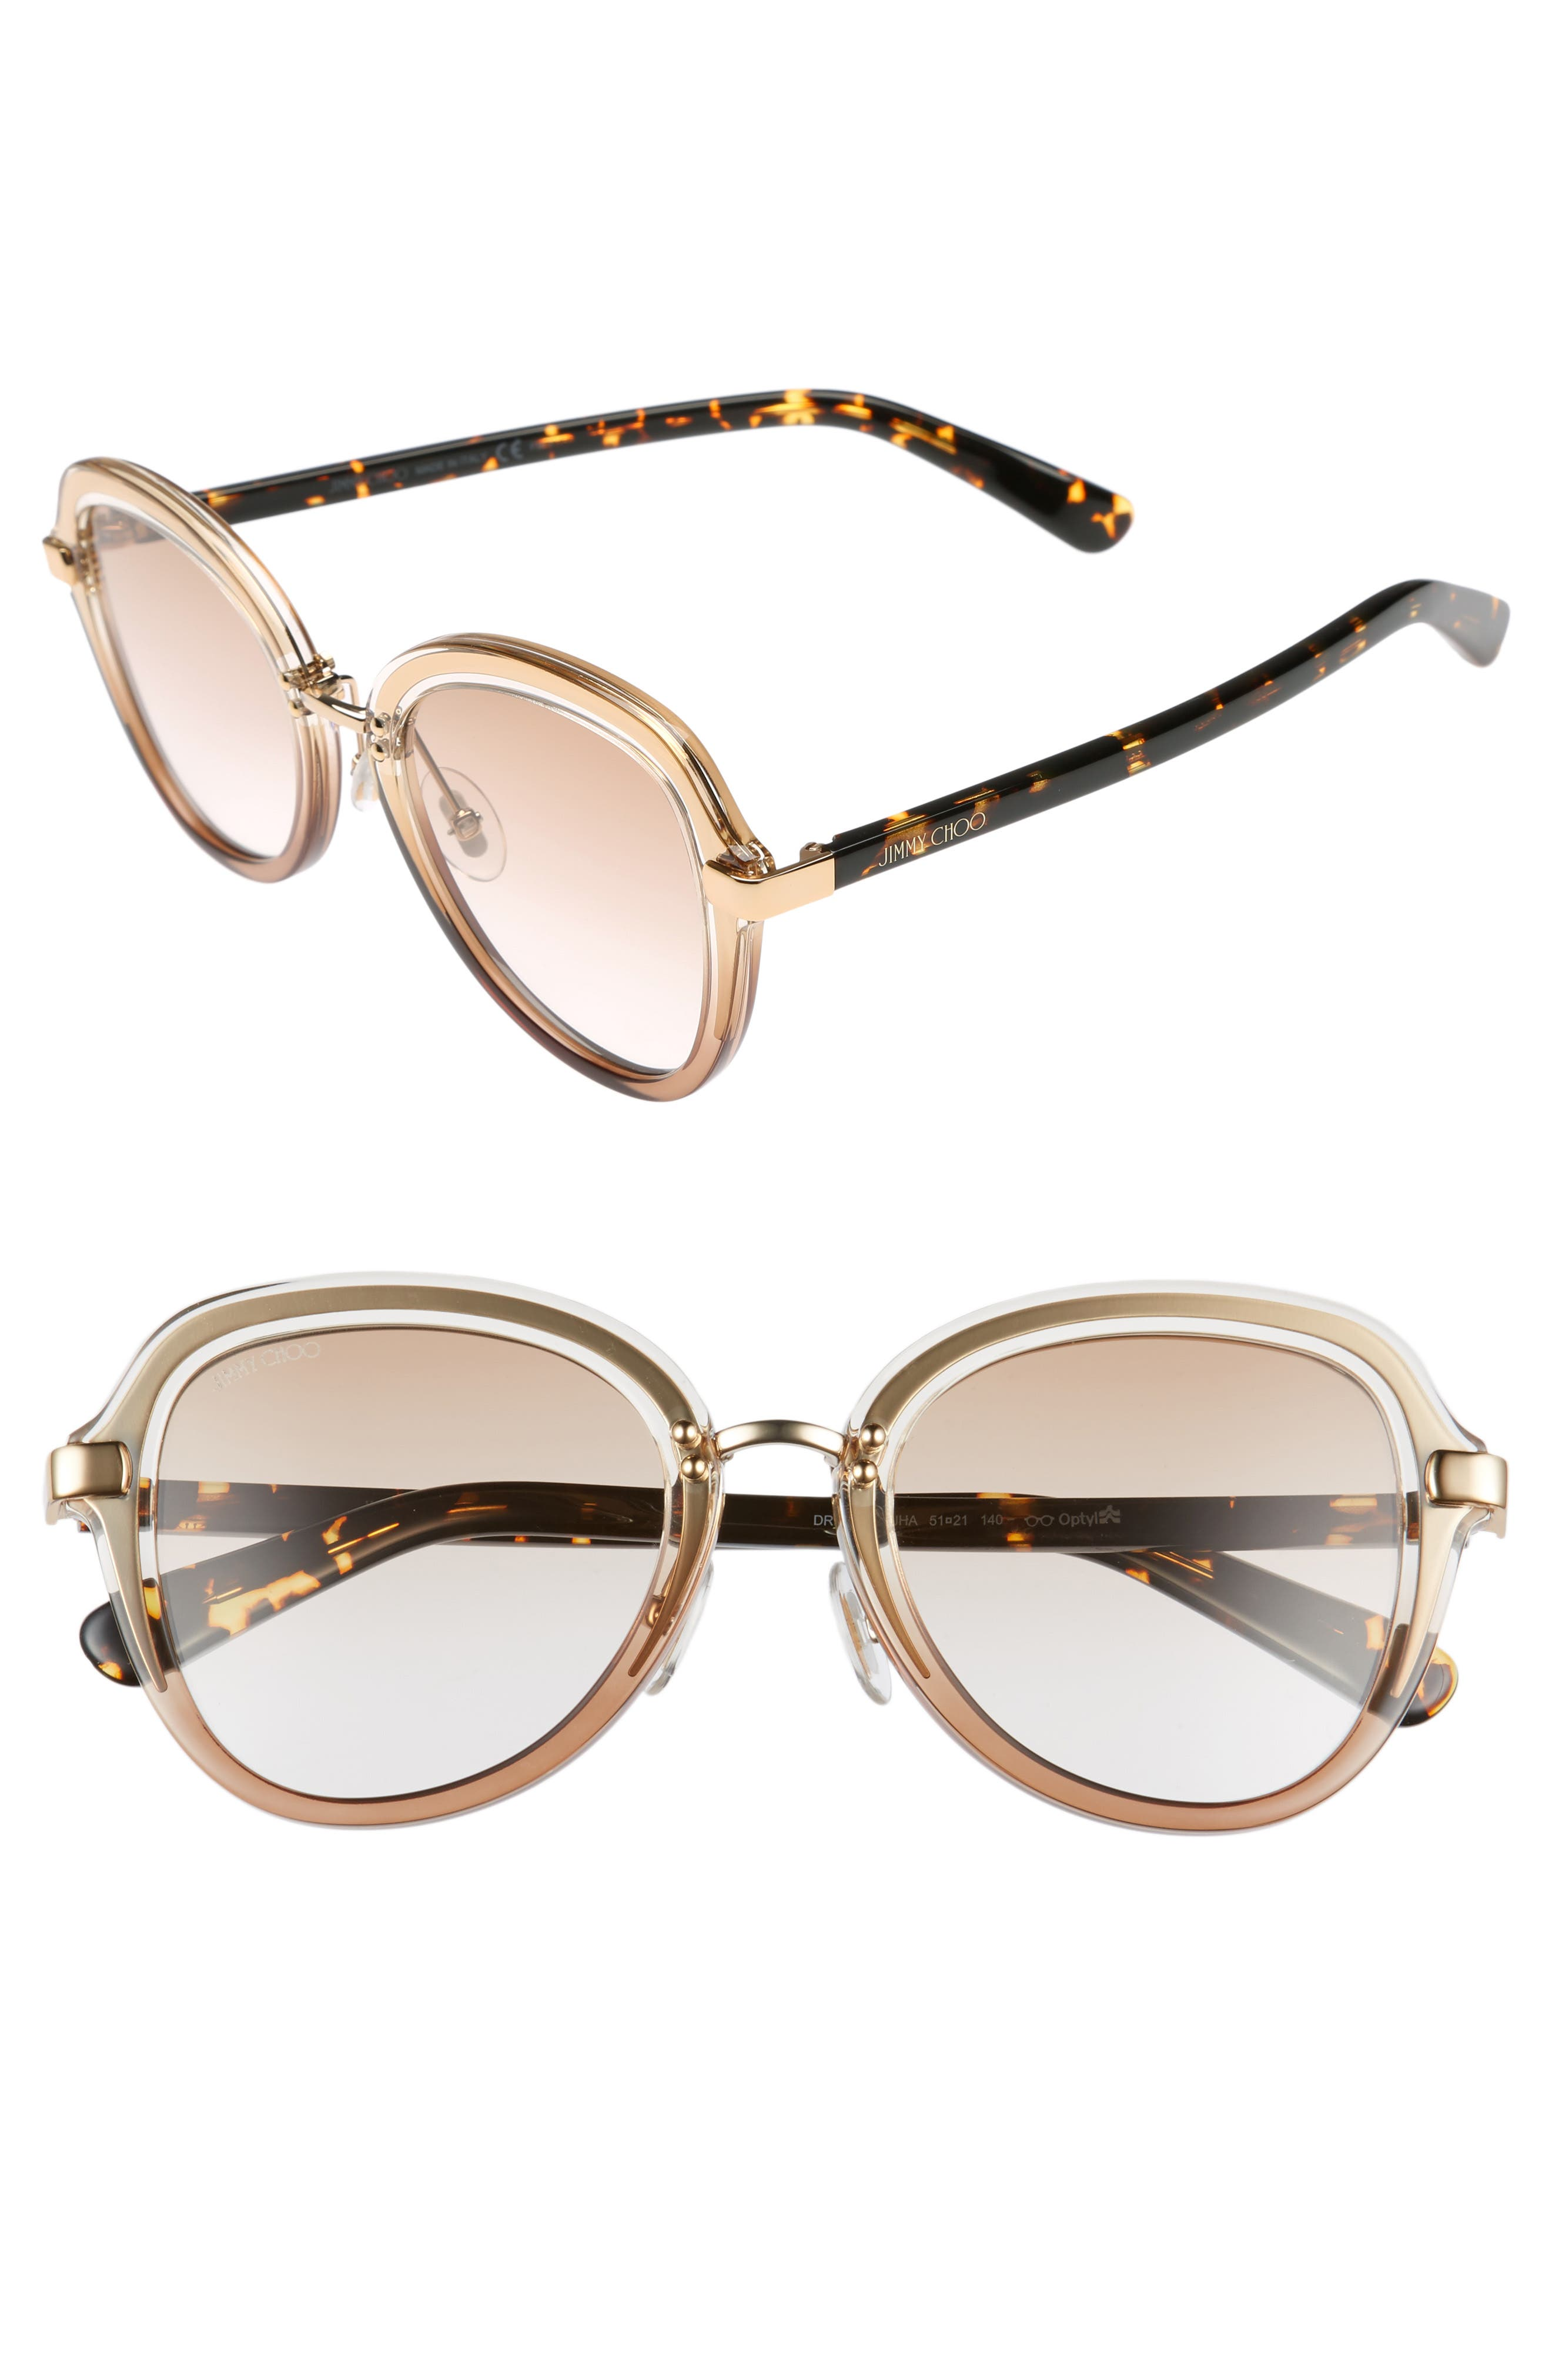 Main Image - Jimmy Choo Drees 51mm Gradient Sunglasses